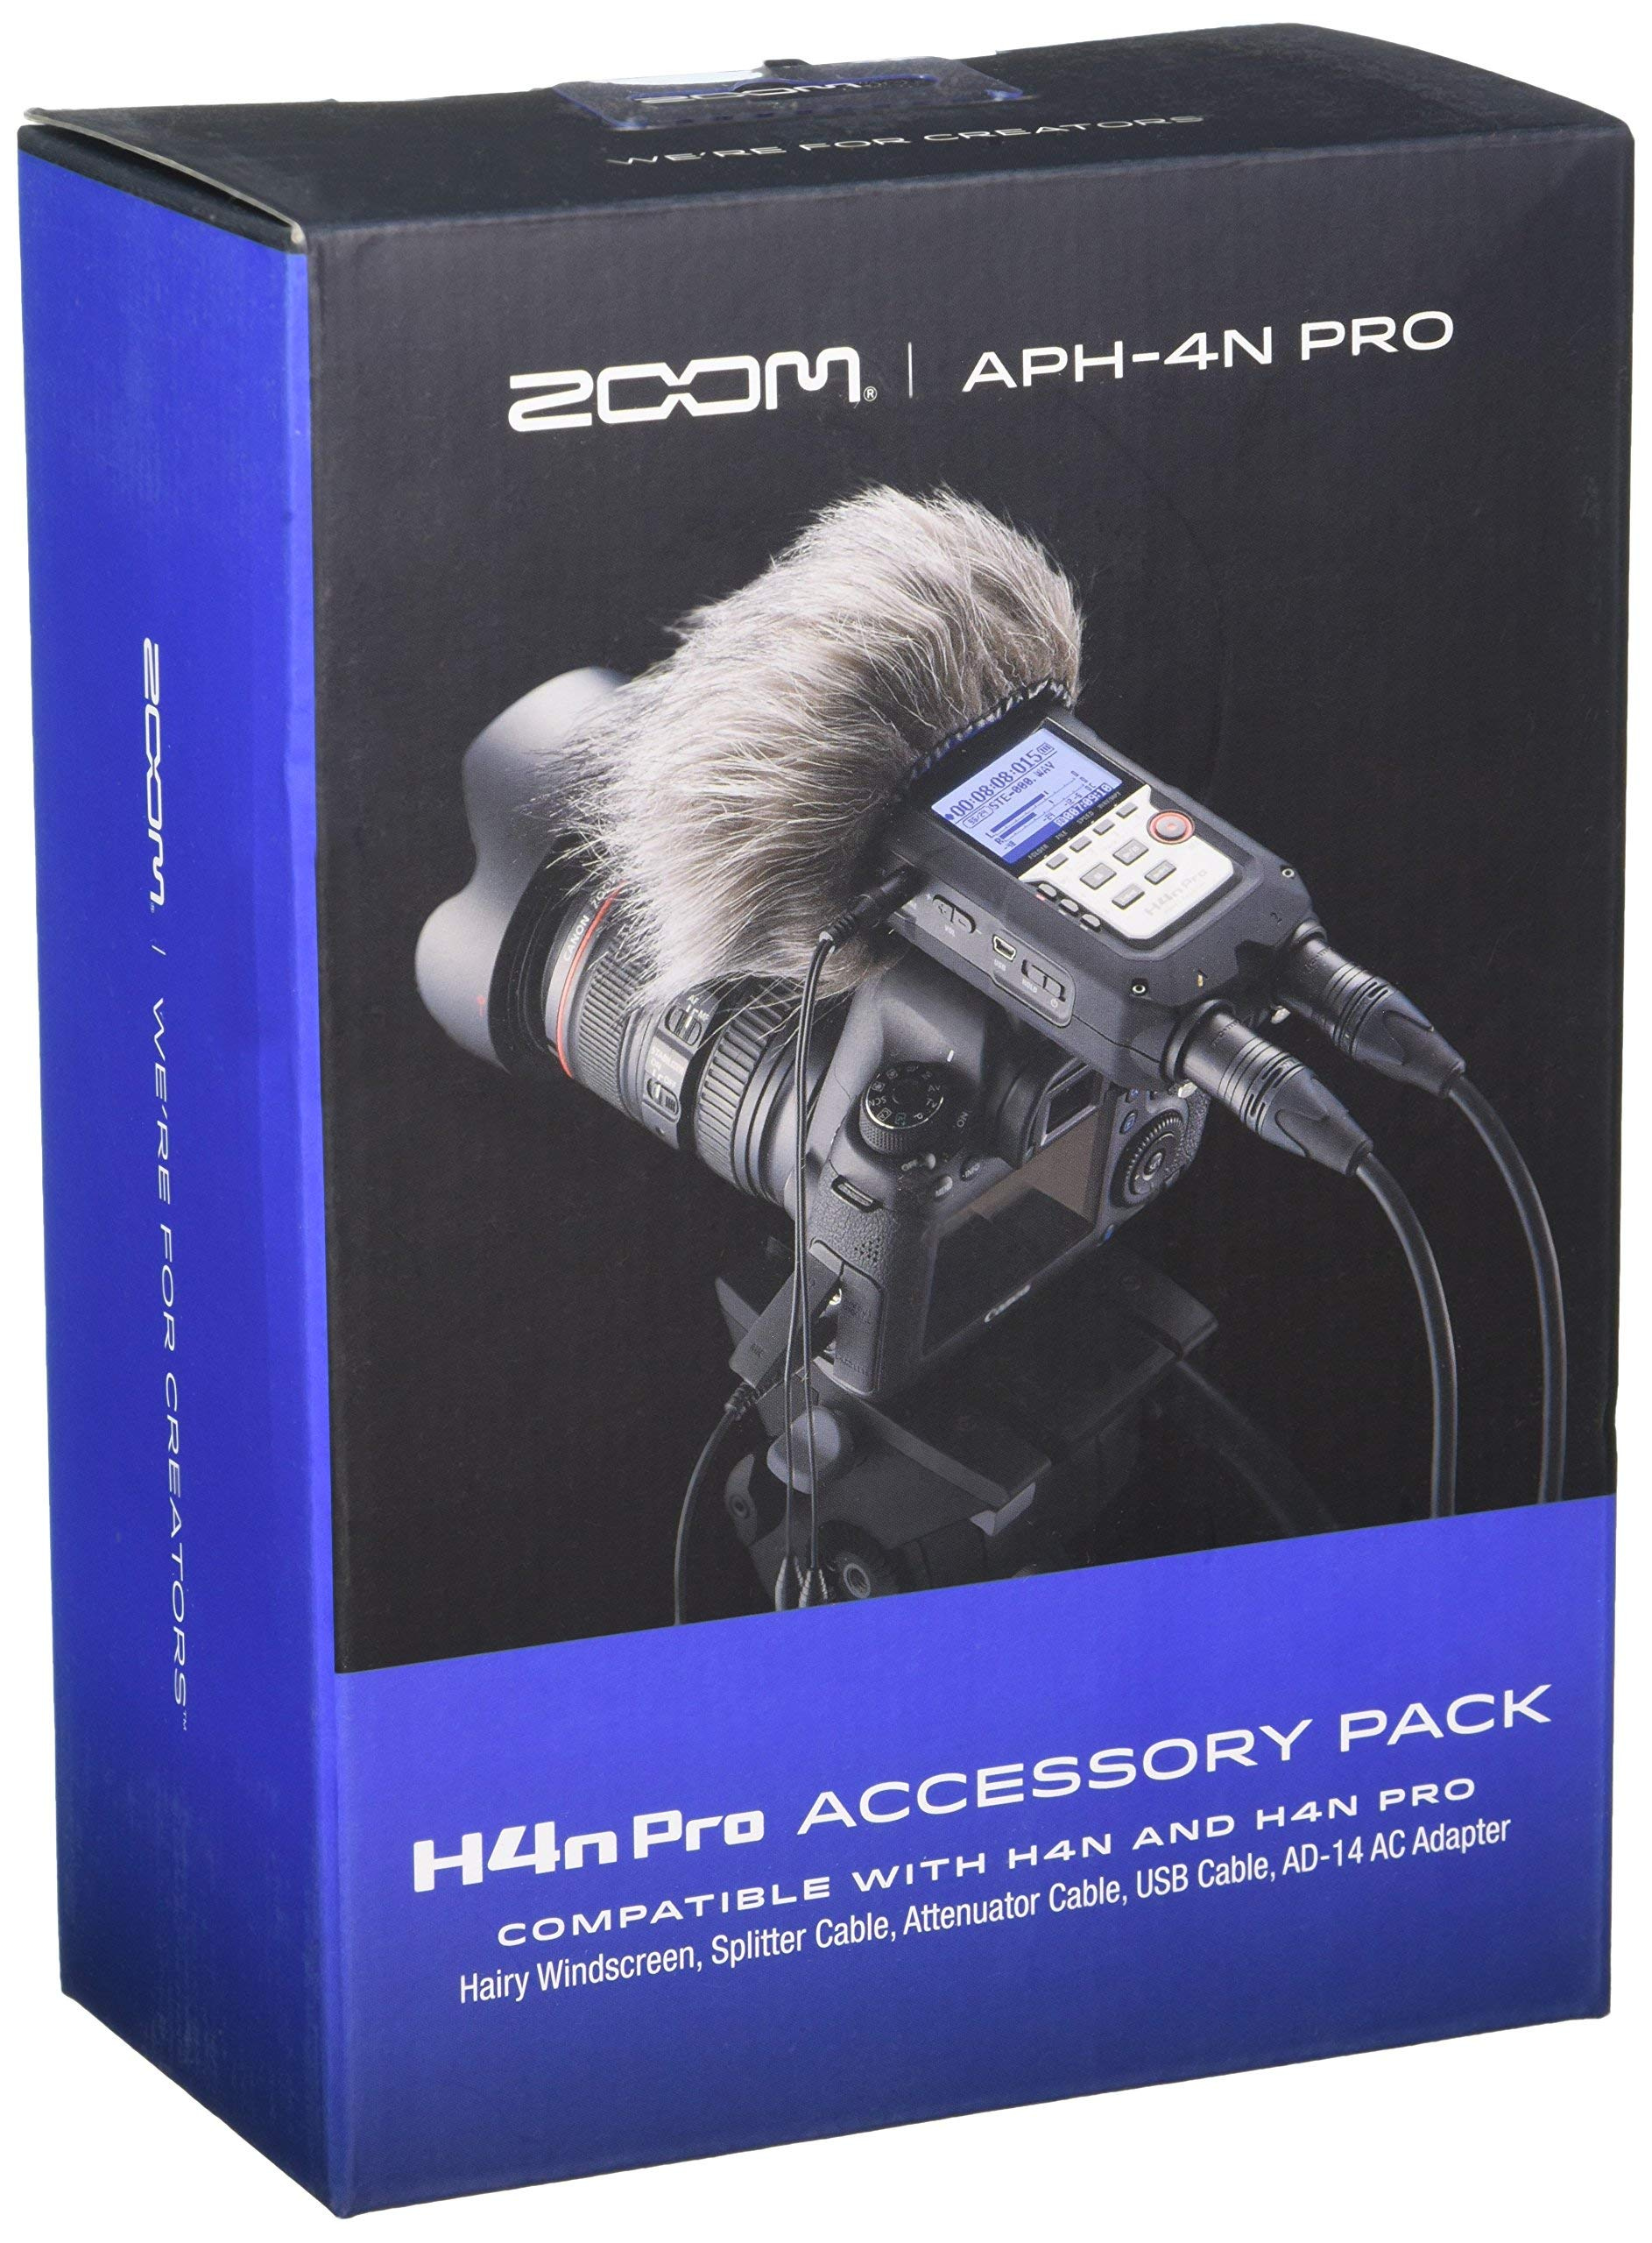 Zoom APH-4nPro Accessory Pack for H4n Pro (Renewed)